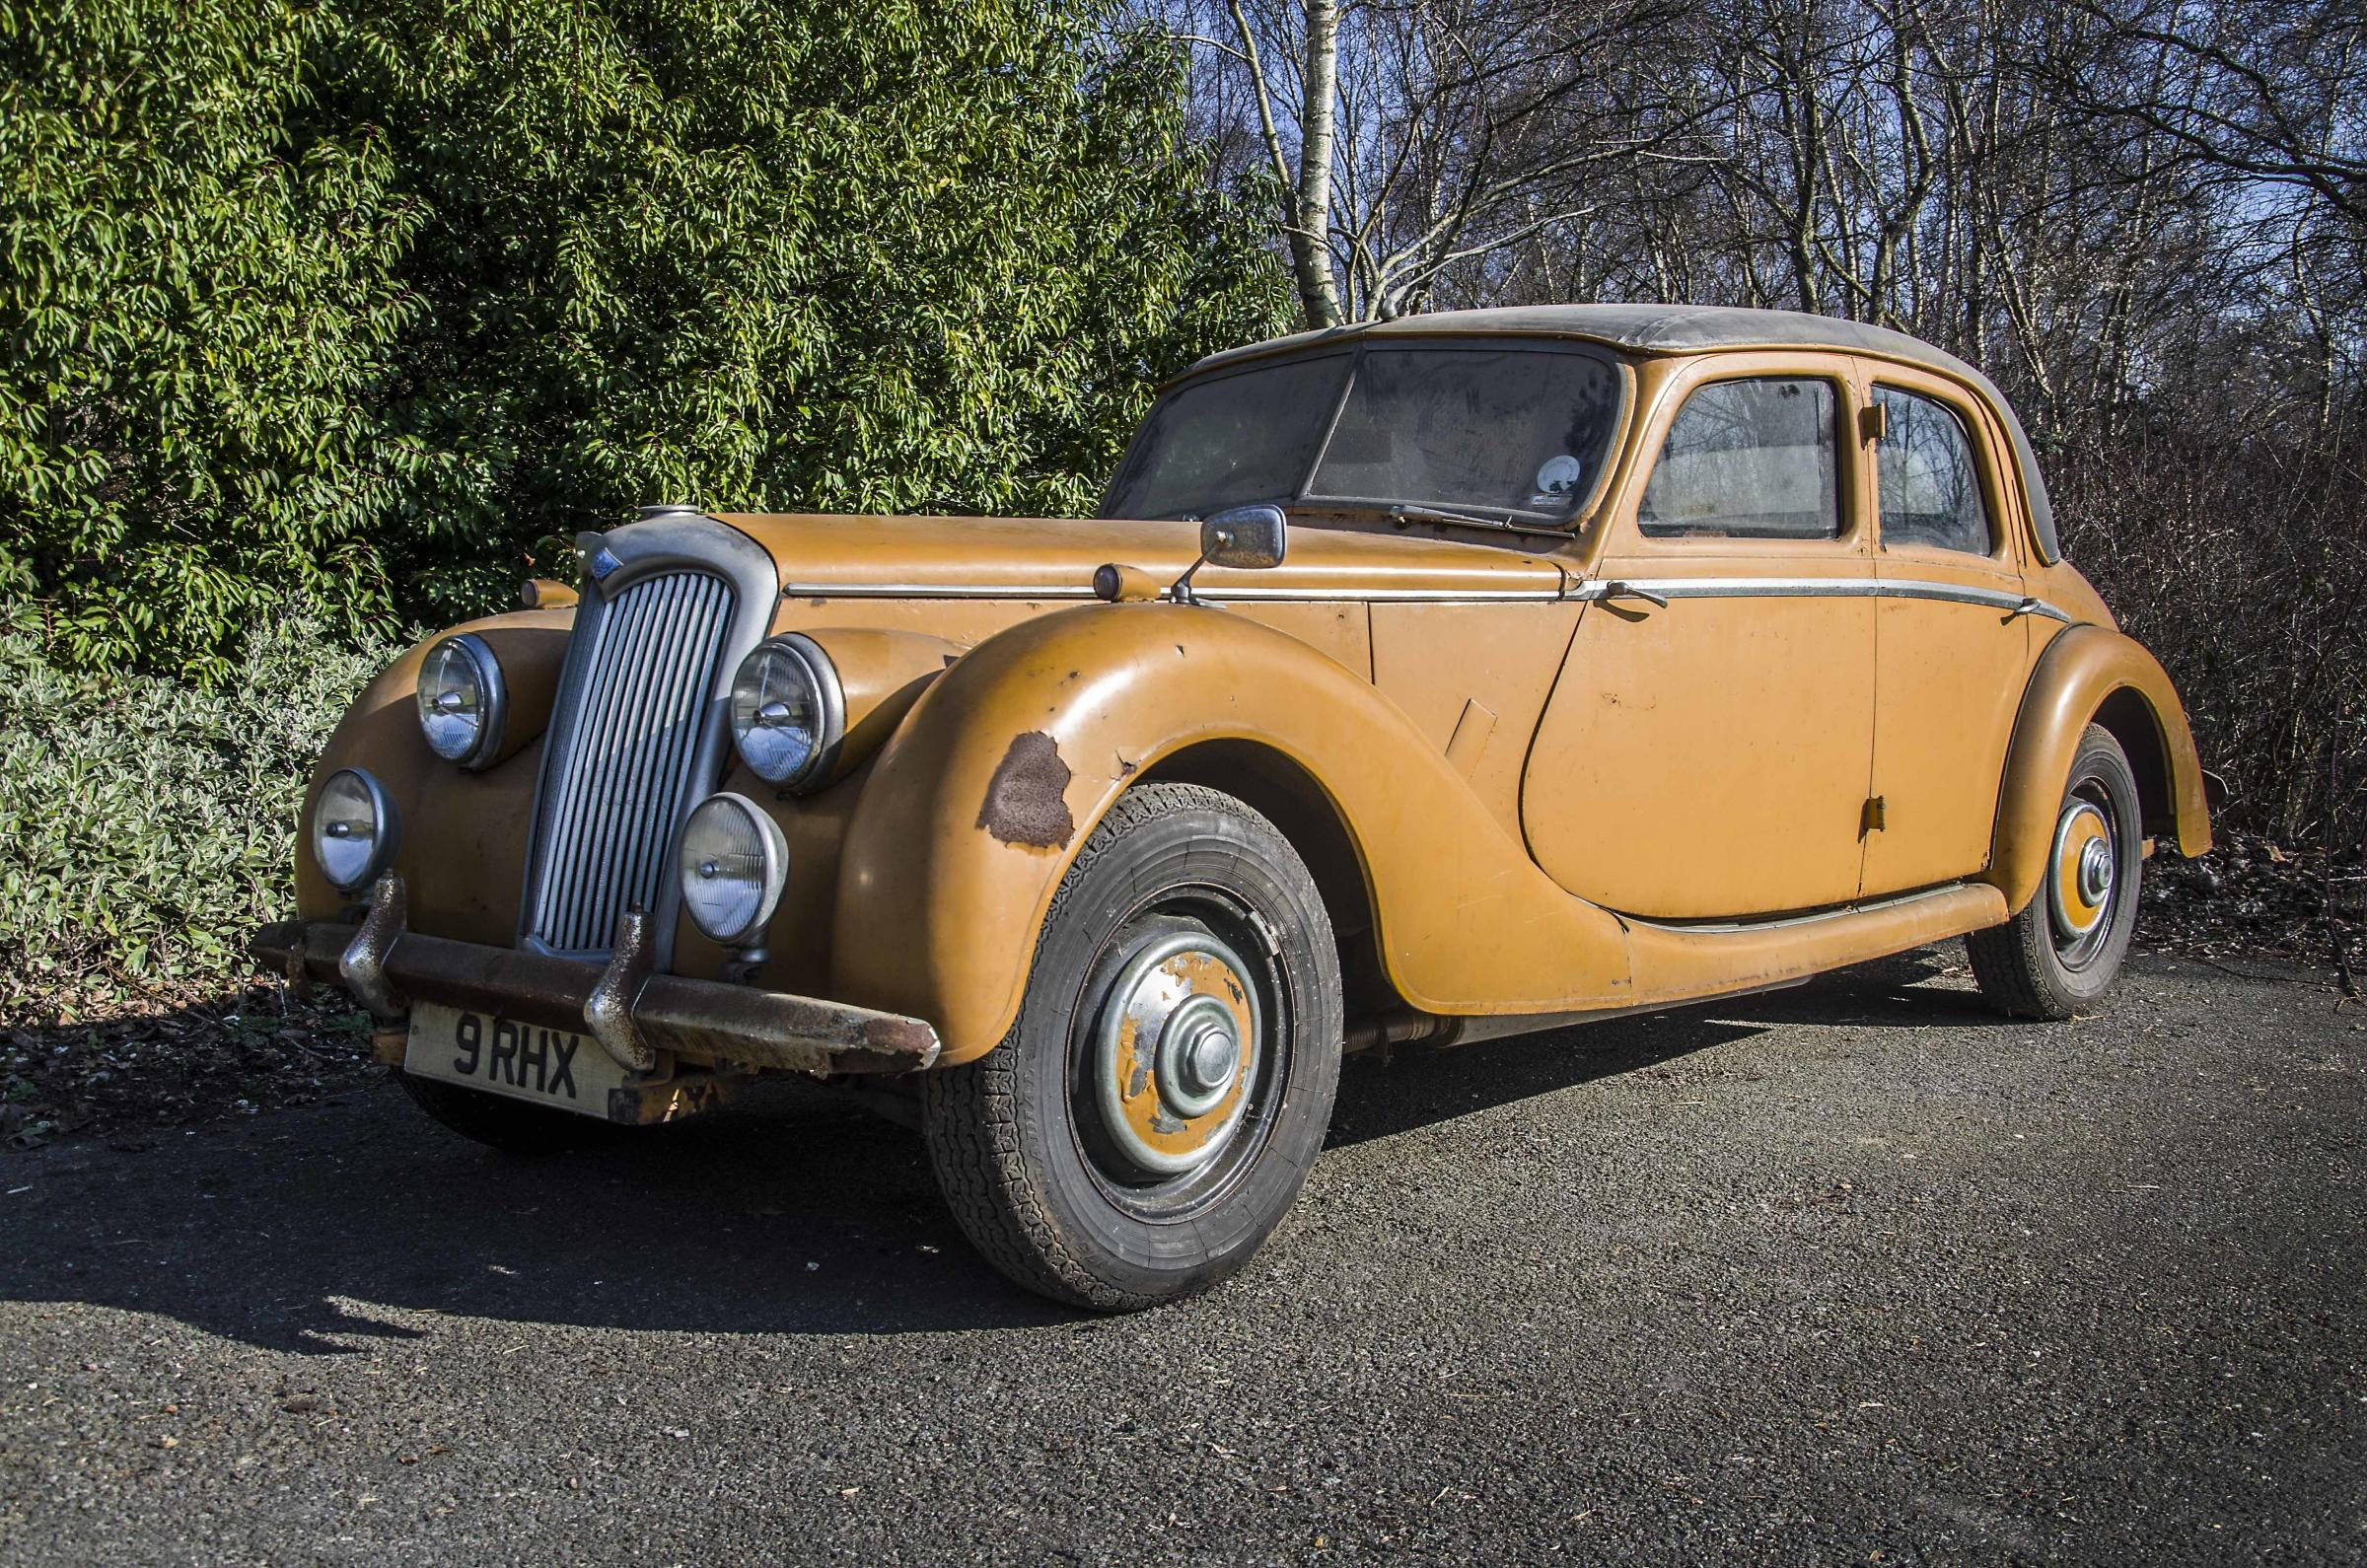 The 1953 Riley RMF being sold by Special Auction Services